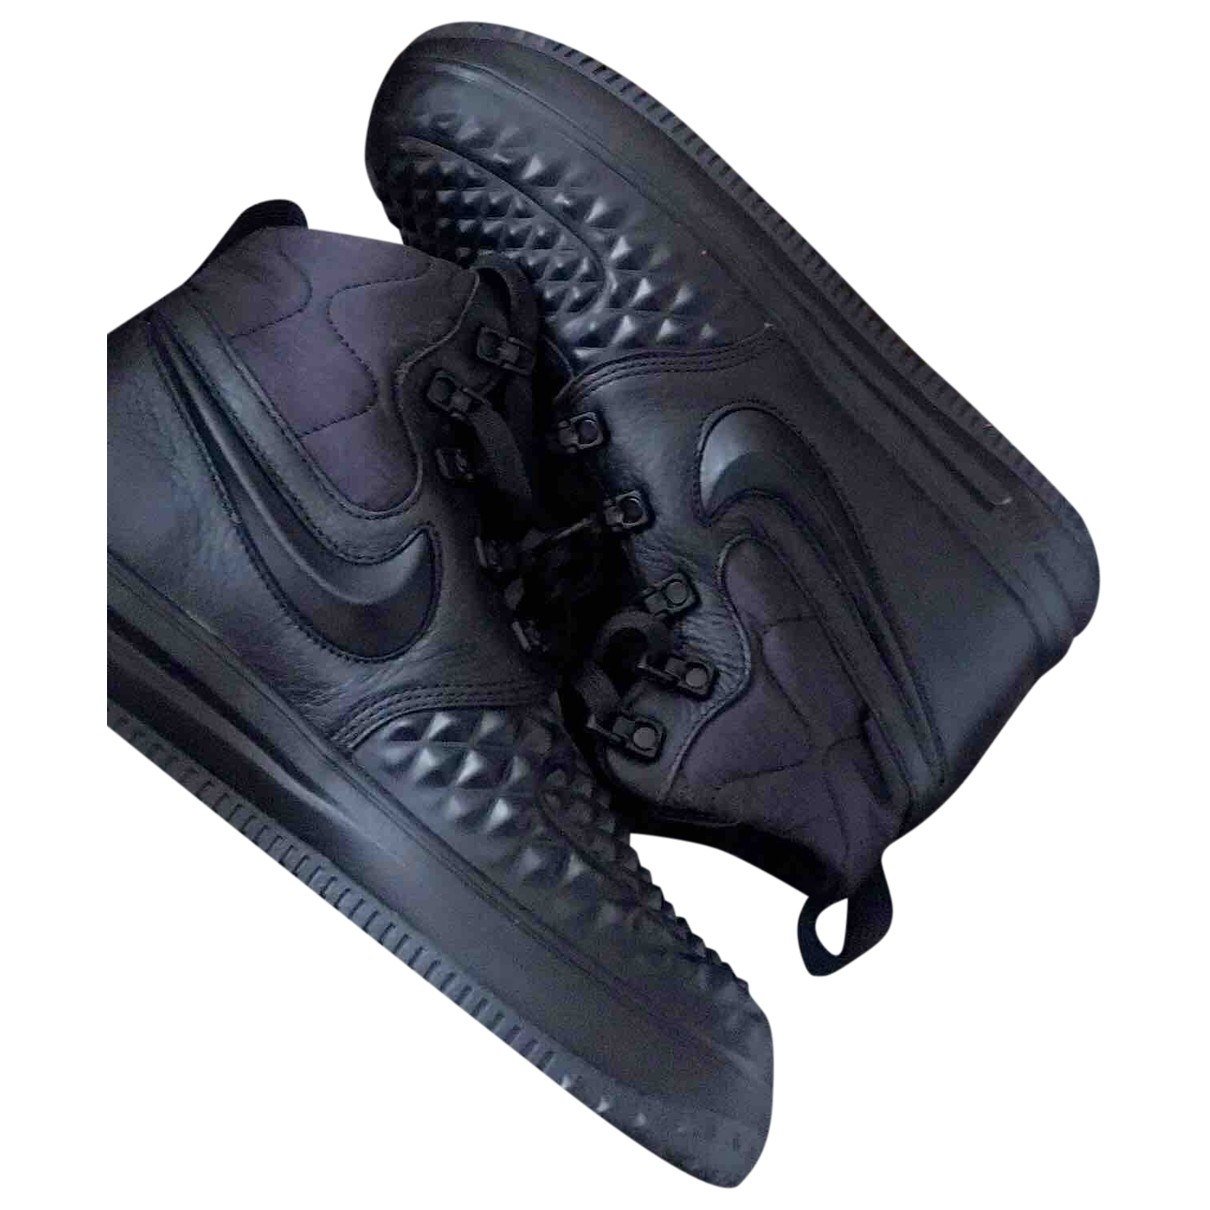 Nike Air Force 1 Black Leather Trainers for Women 38 EU